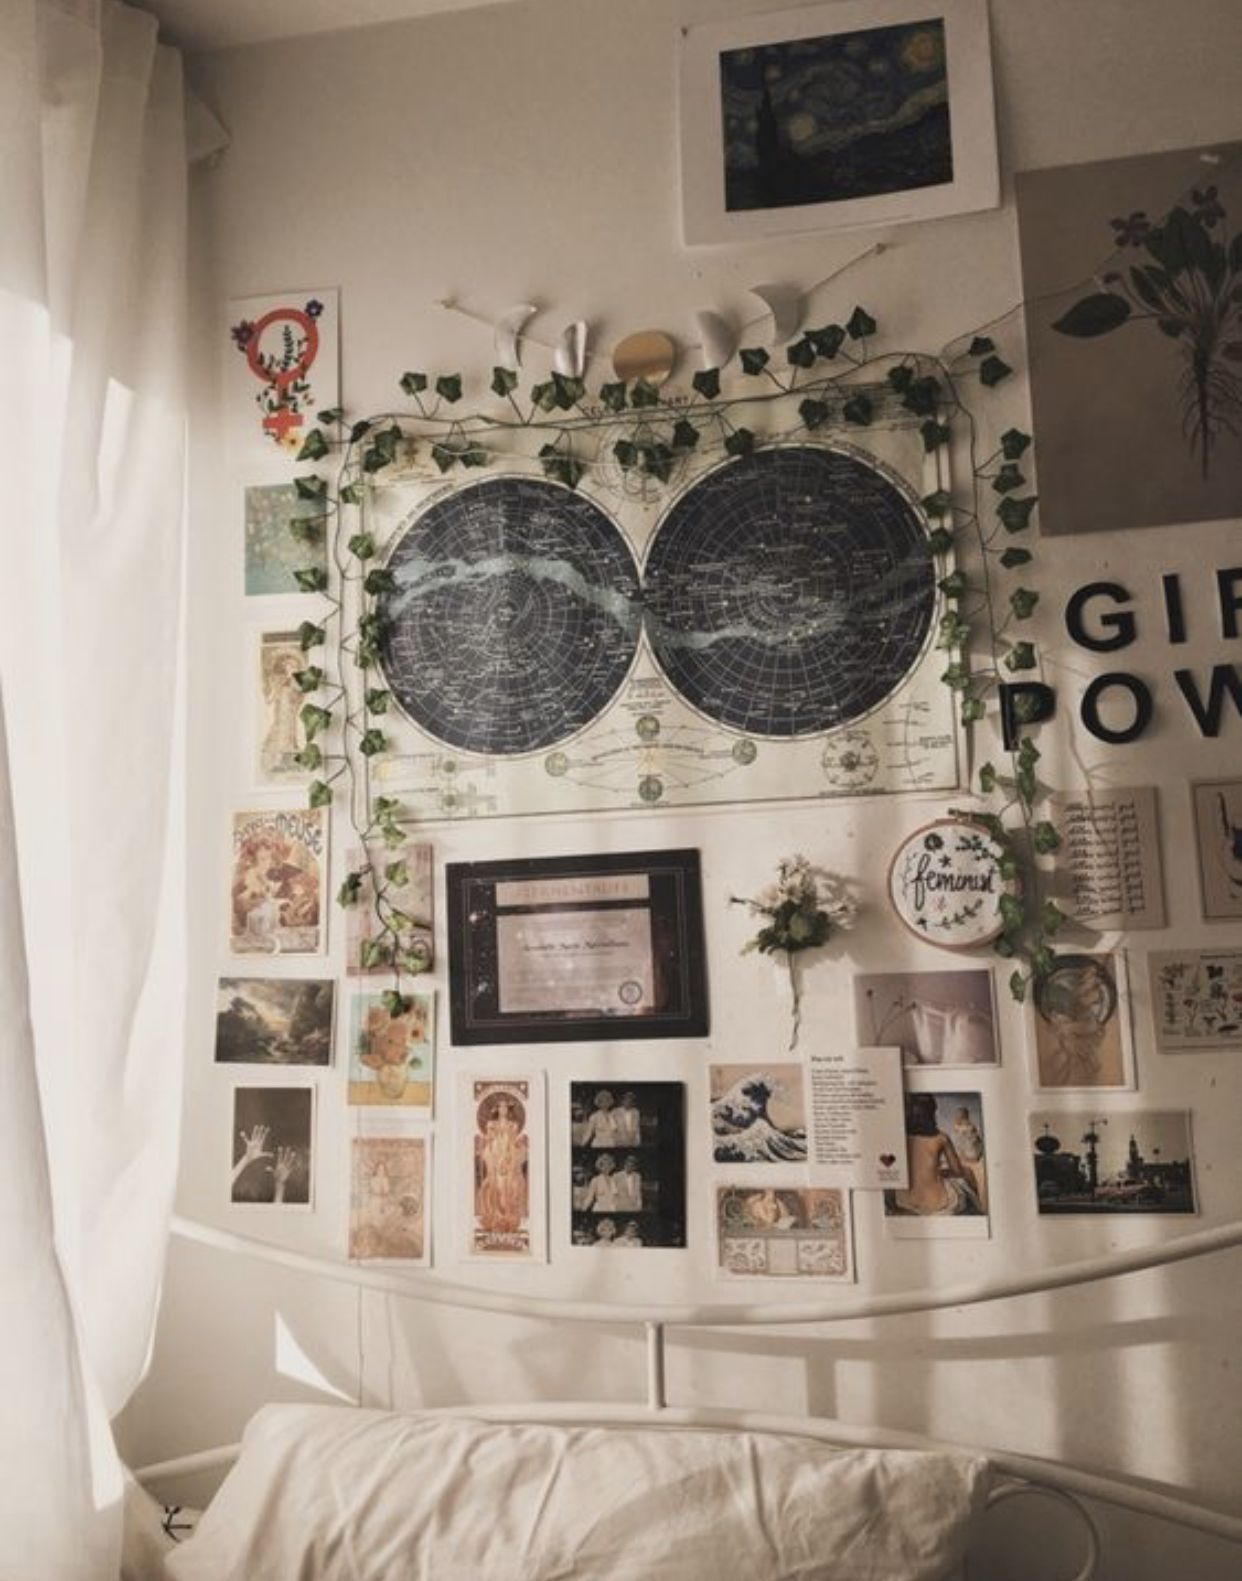 Pin by Maddie Fetsko on no place like home | Aesthetic ...